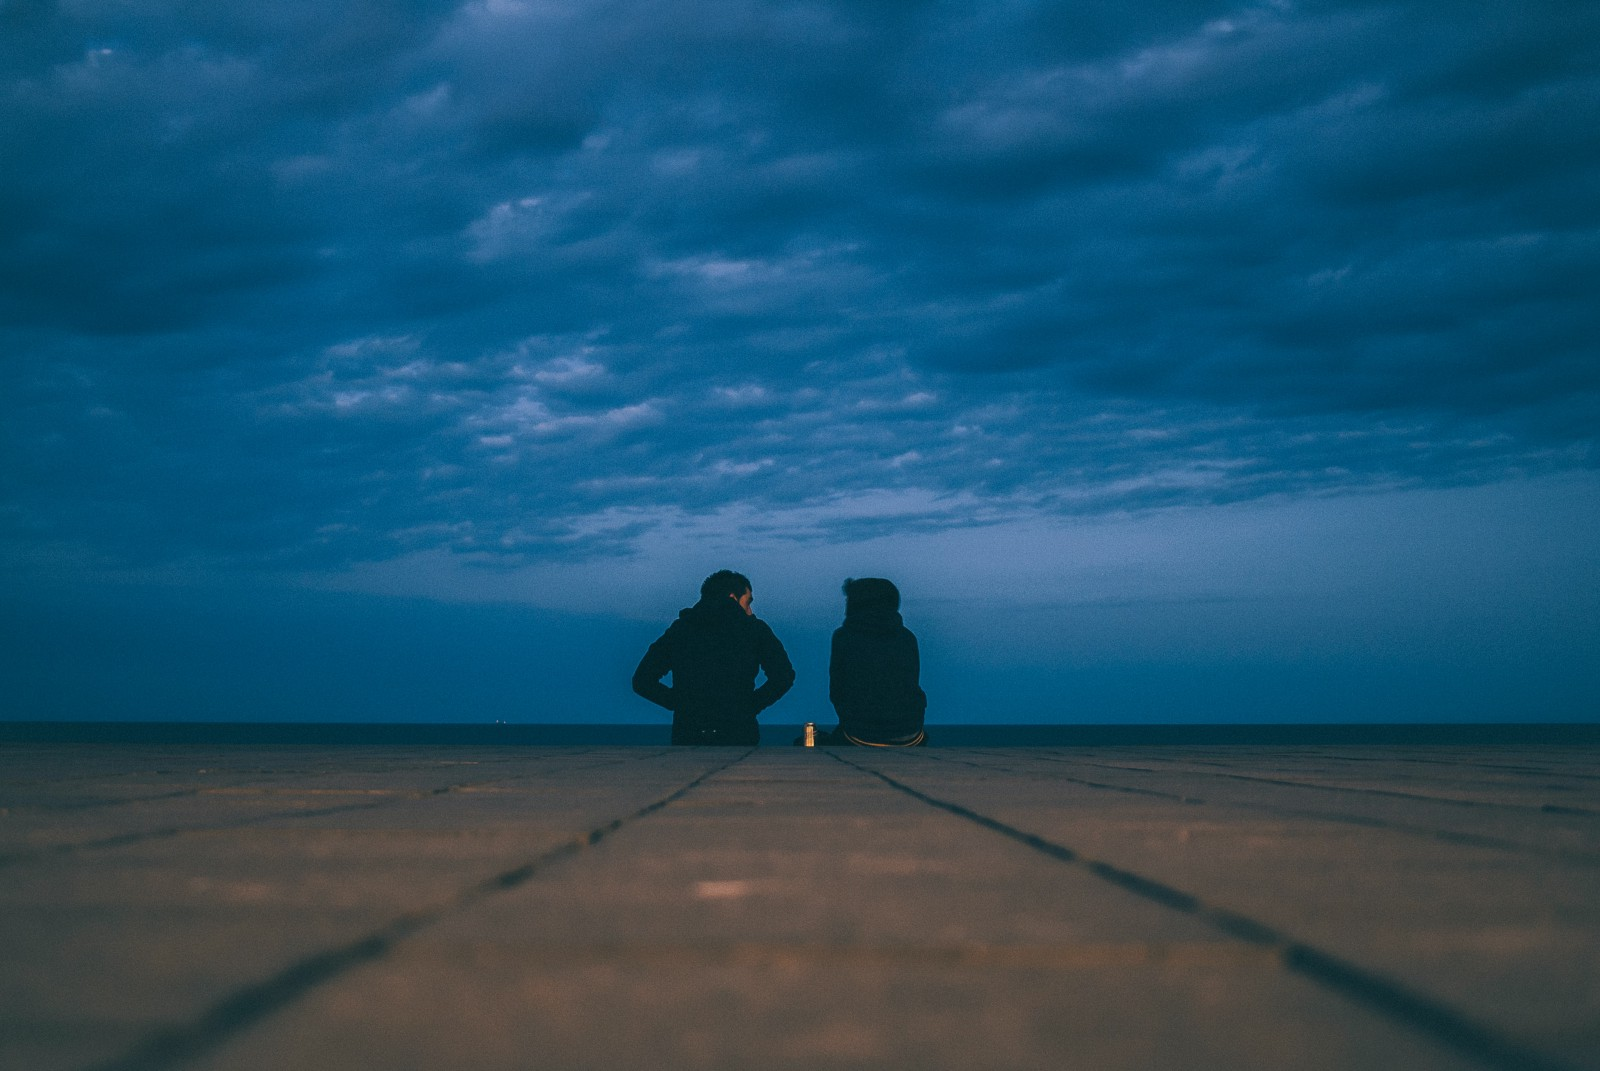 Two people sit talking at the end under a cloudy sky.